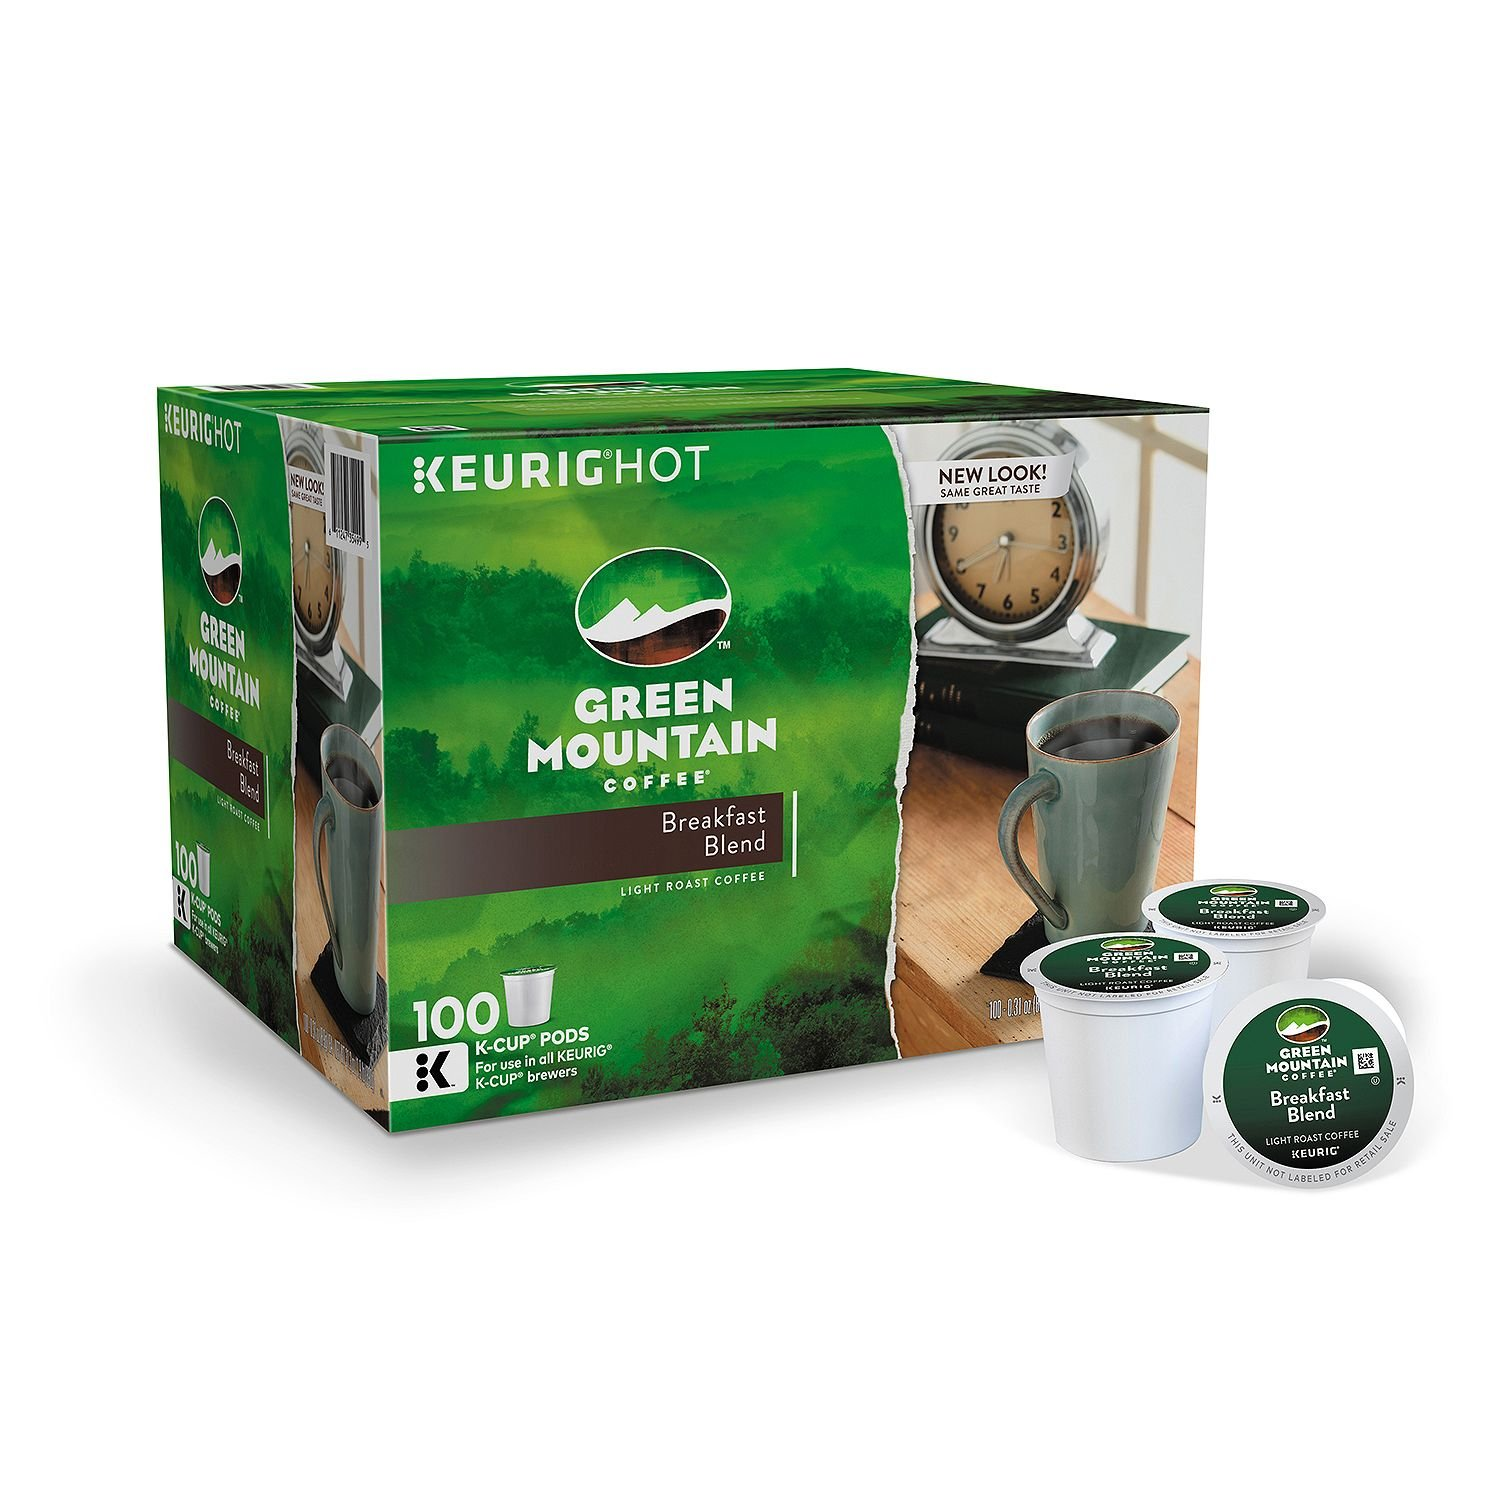 Green Mountain Coffee Keurig Coffee (Breakfast Blend 100 Count) by Green Mountain Coffee